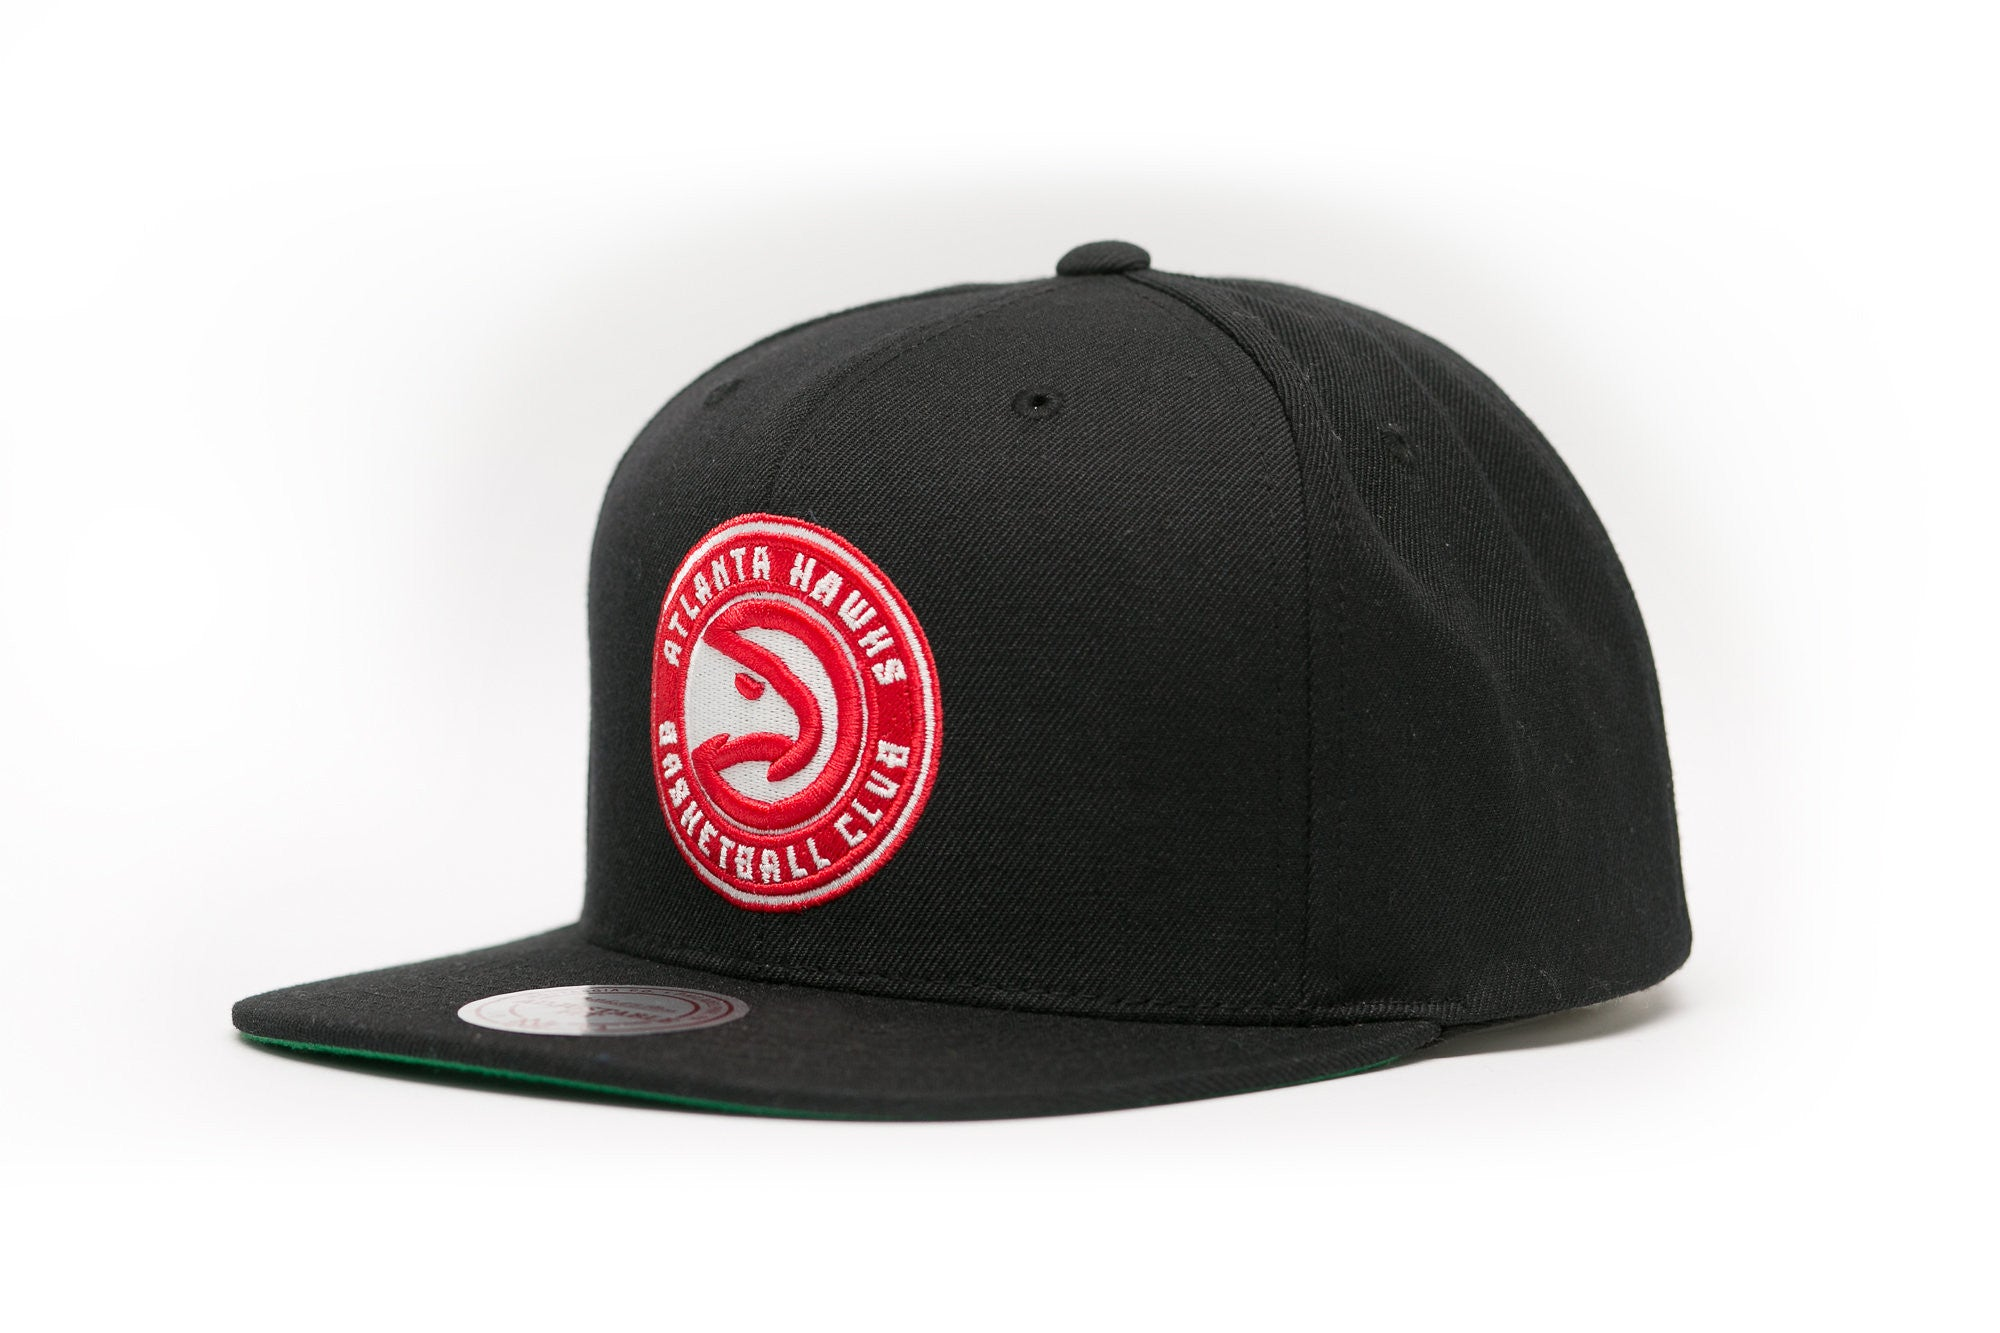 huge discount dc1c7 221e6 ATLANTA HAWKS MITCHELL   NESS NBA TEAM LOGO SNAPBACK CAP HAT , SNAPBACKS, -  Sneaker